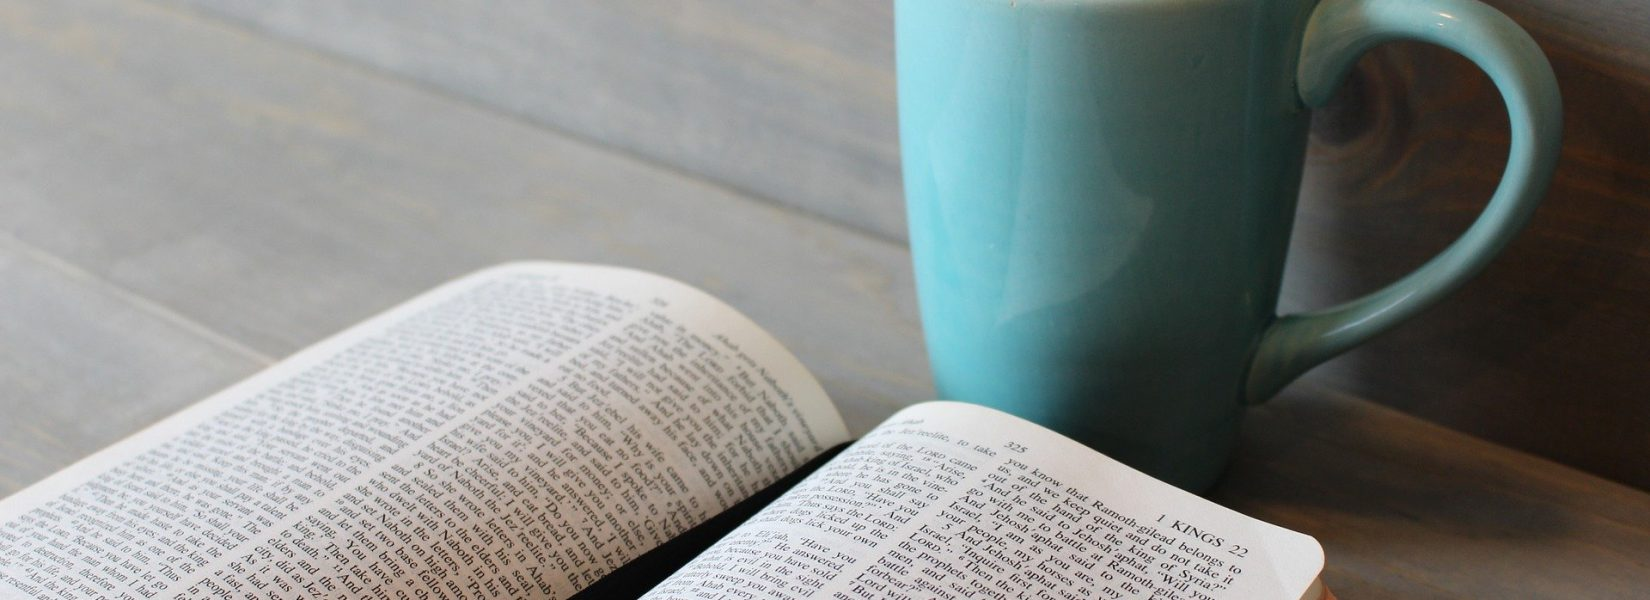 5 Best Study Bibles for Women to Inspire and Grow in 2021